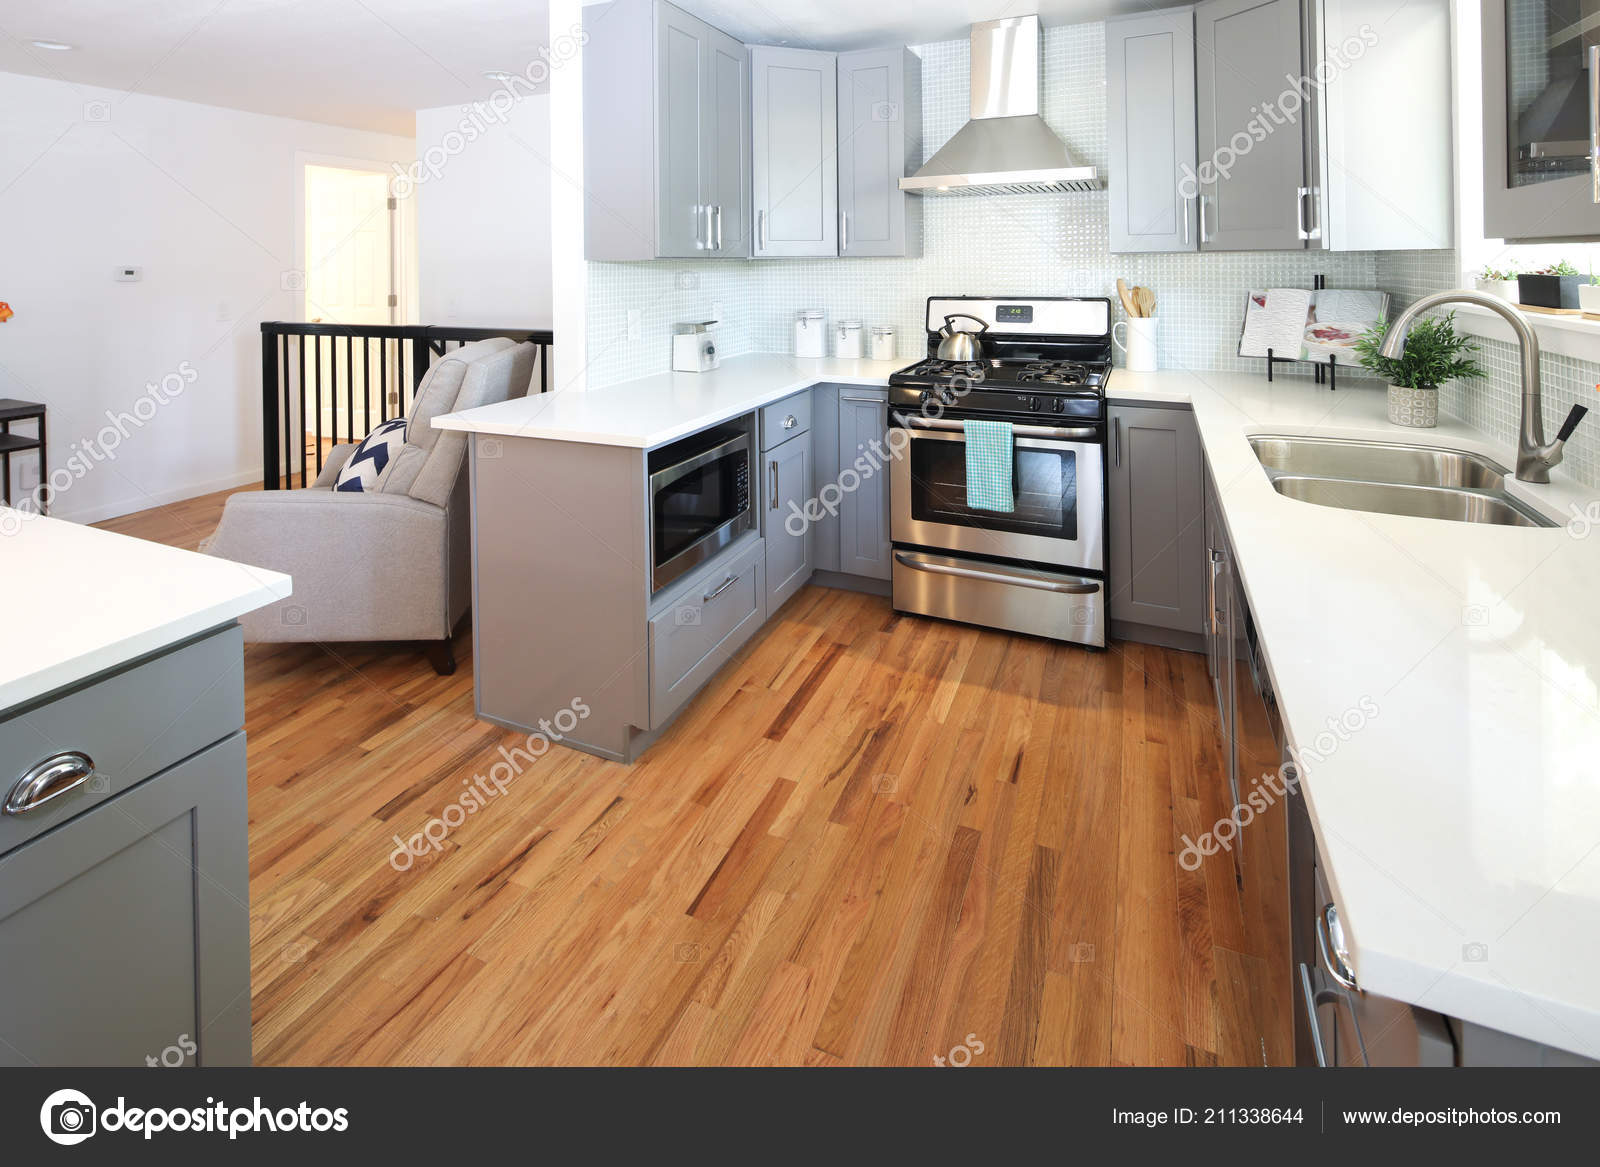 Stunning Kitchen Design Grey Cabinets White Countertops Stock Photo Image By C Alabn 211338644